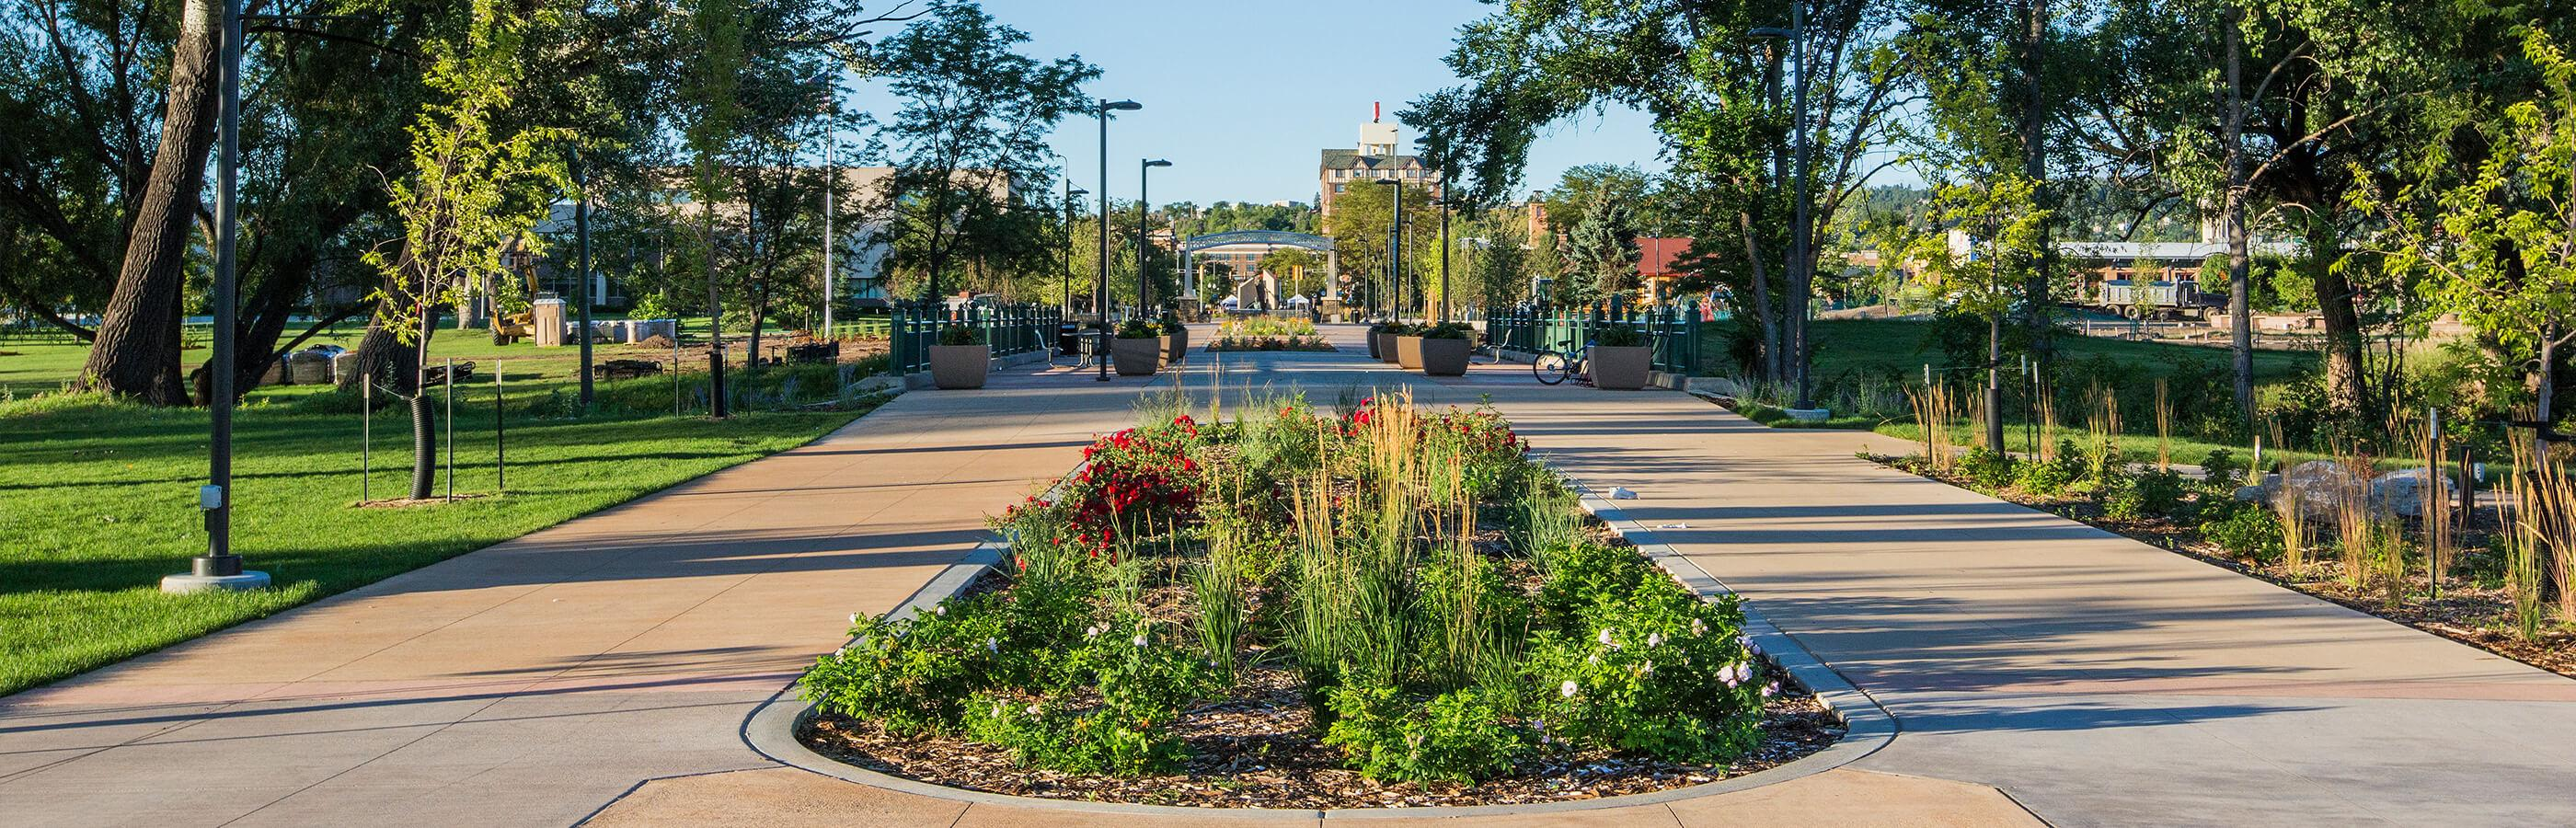 The Promenade At Memorial Park In Rapid City